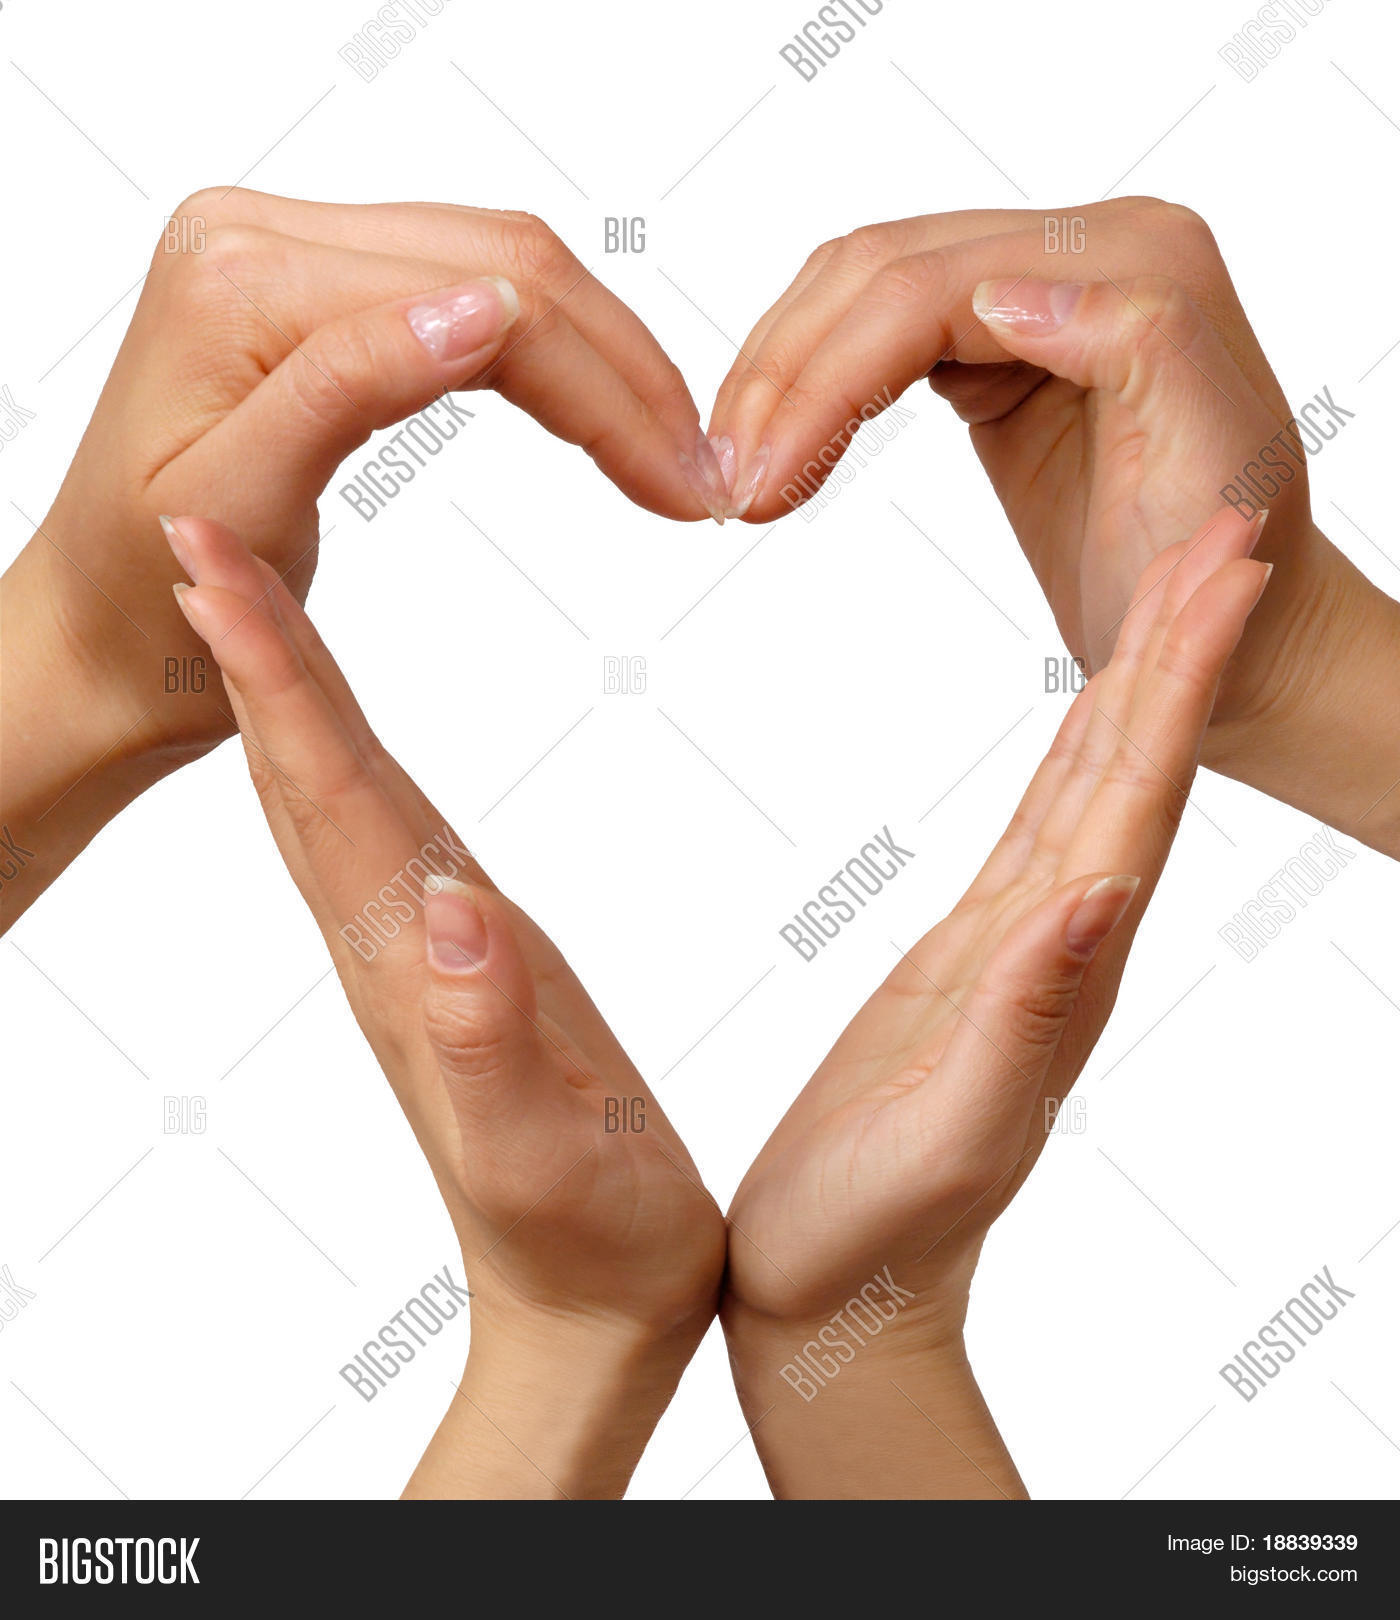 Heart Made Hands Image Photo Free Trial Bigstock